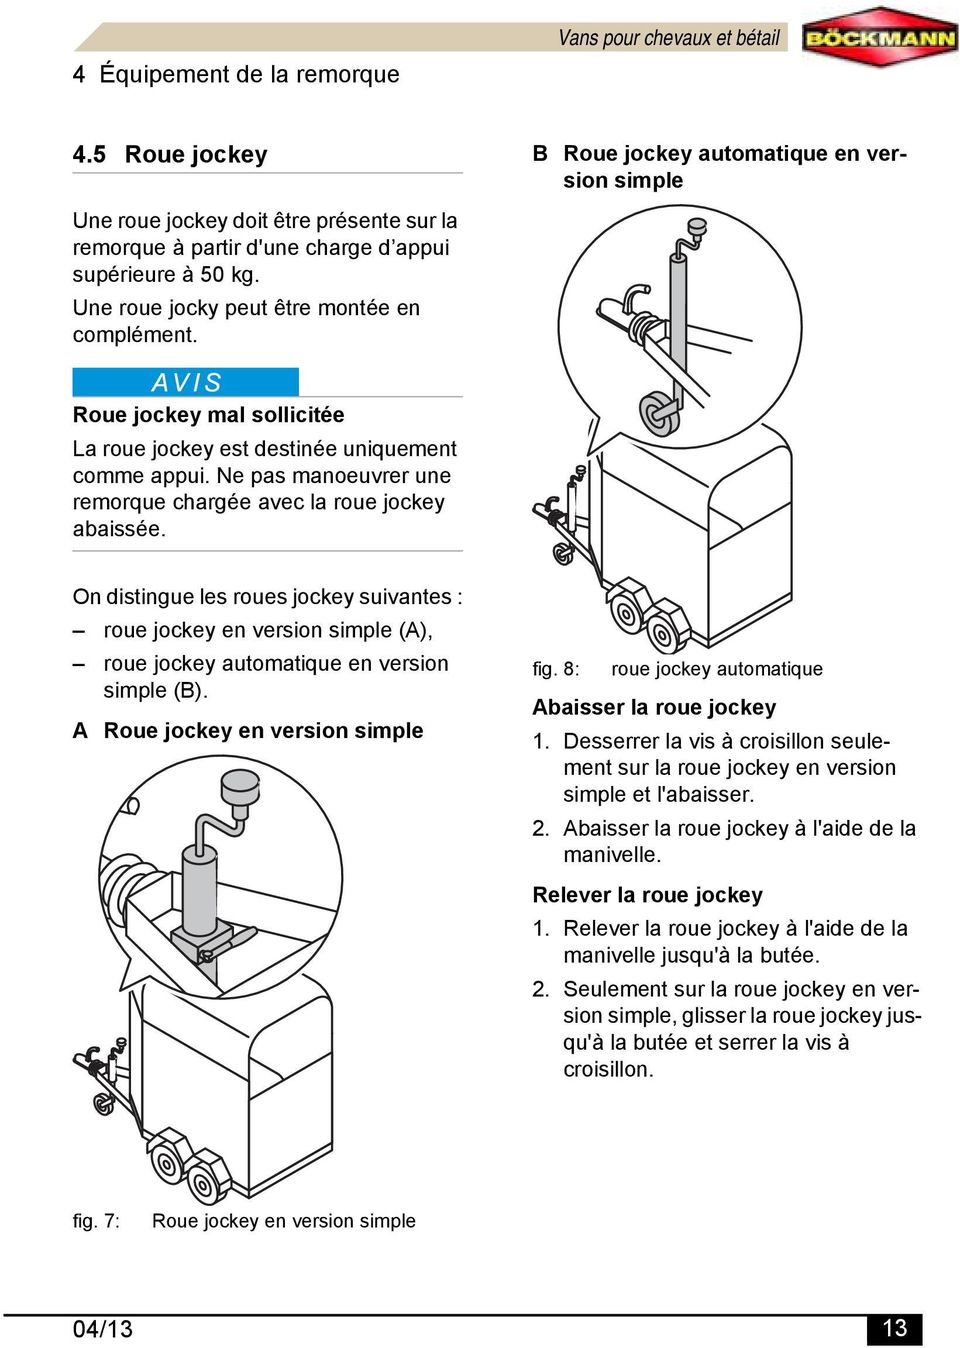 Ne pas manoeuvrer une remorque chargée avec la roue jockey abaissée. On distingue les roues jockey suivantes : roue jockey en version simple (A), roue jockey automatique en version simple (B).